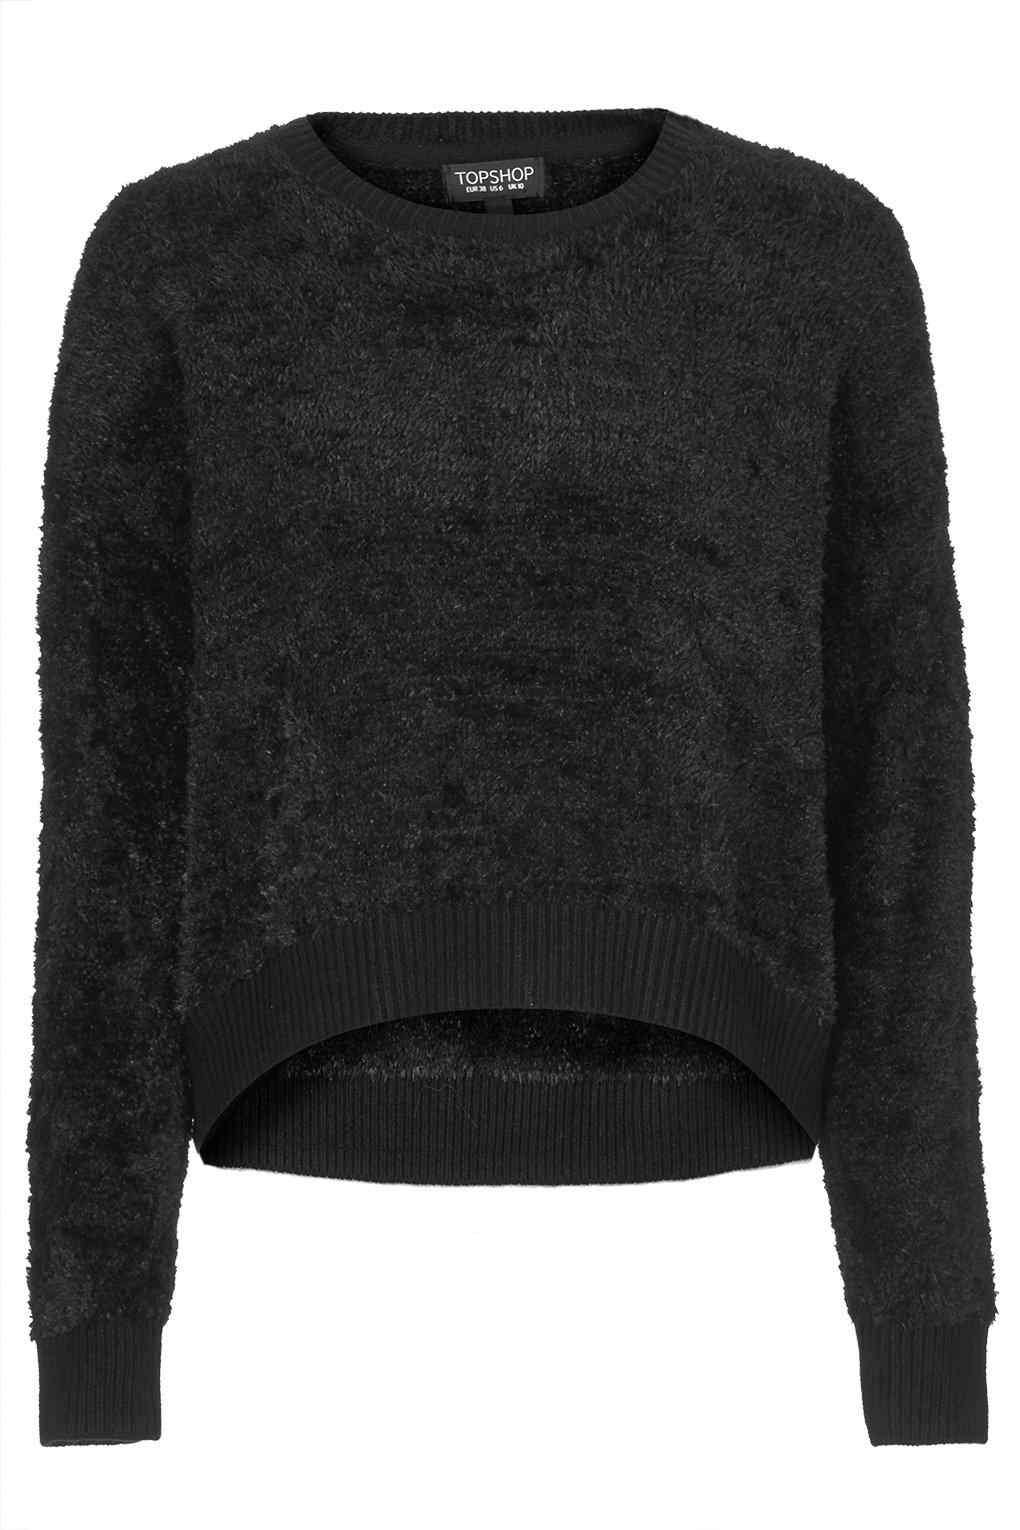 Topshop - Pull (46 €)